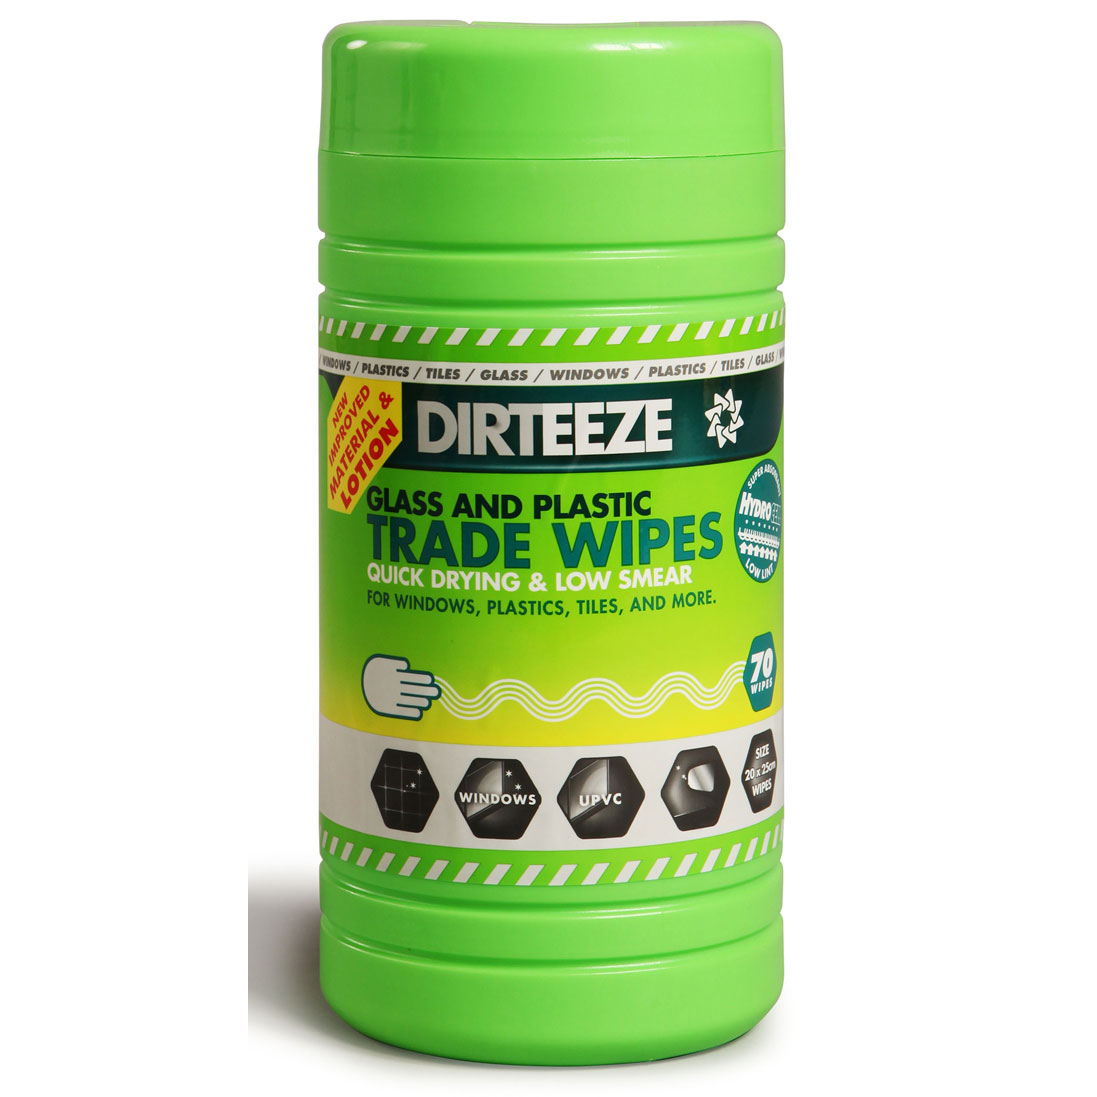 Multipurpose Cleaning Dirteeze Glass & Plastic Trade Wipes Dispenser Tub 200x250mm Ref DZGP80 [80 Wipes] *Up to 3 Day Leadtime*